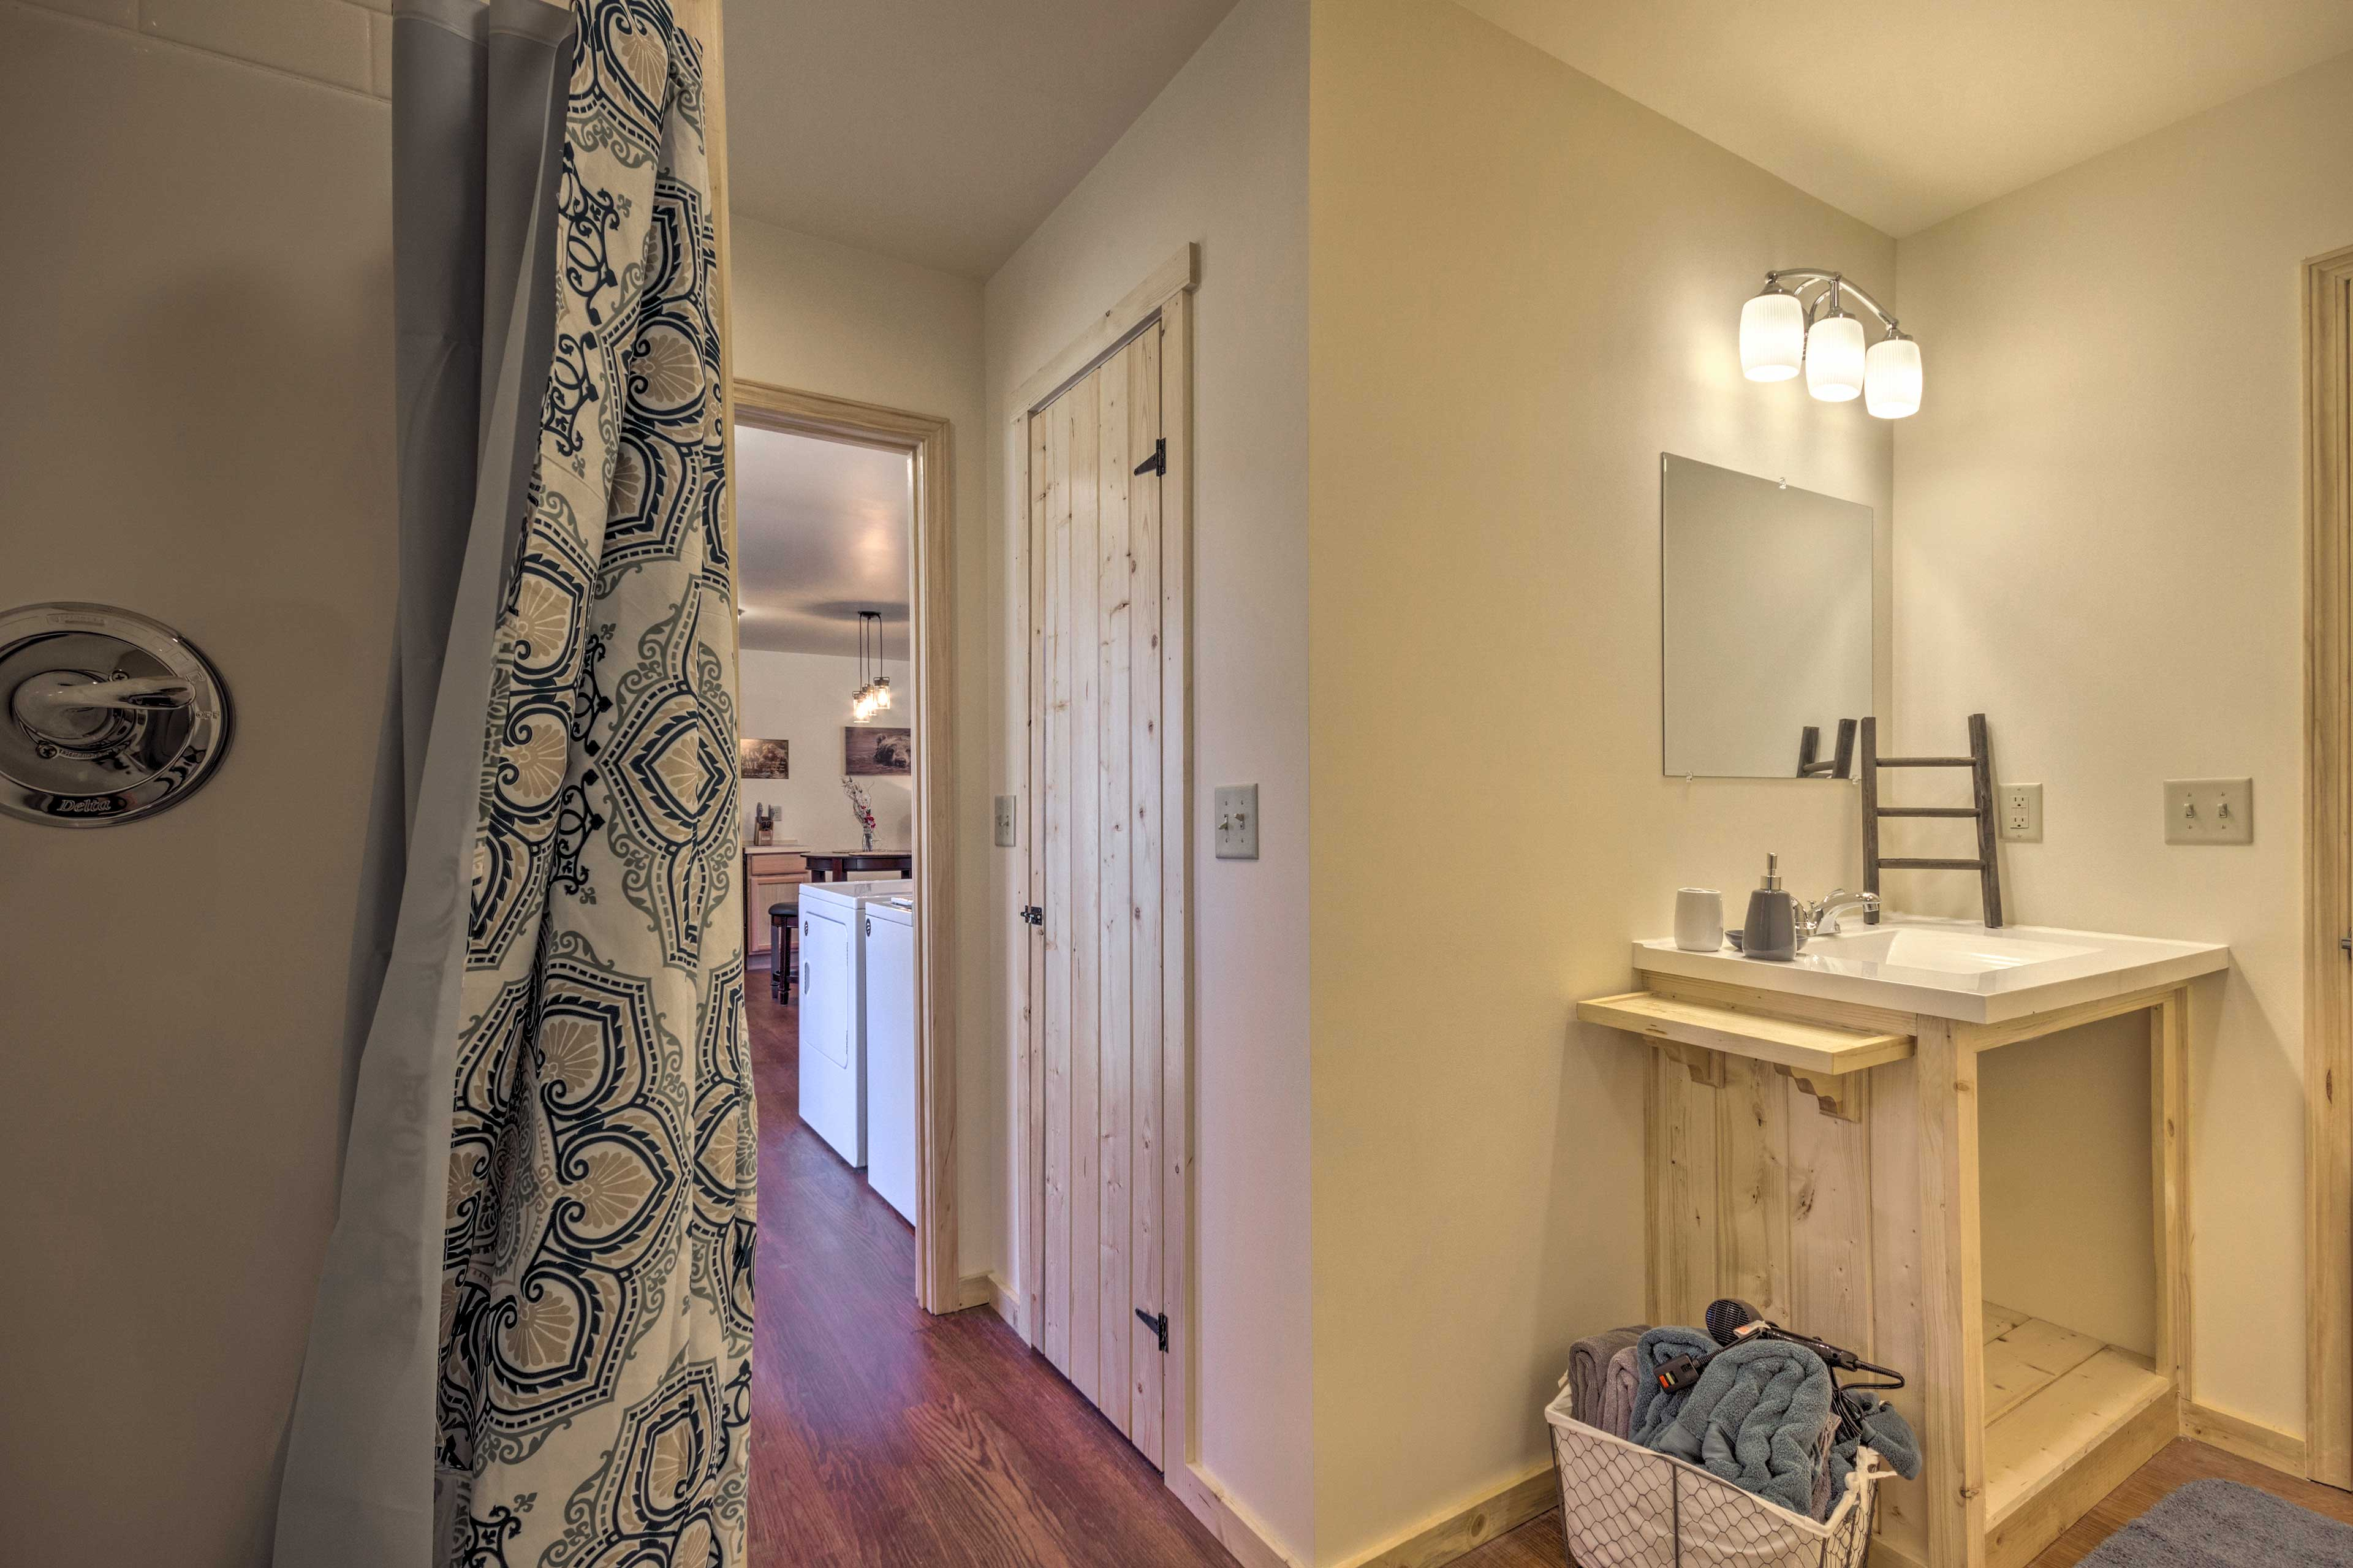 Provided amenities include linens and towels!